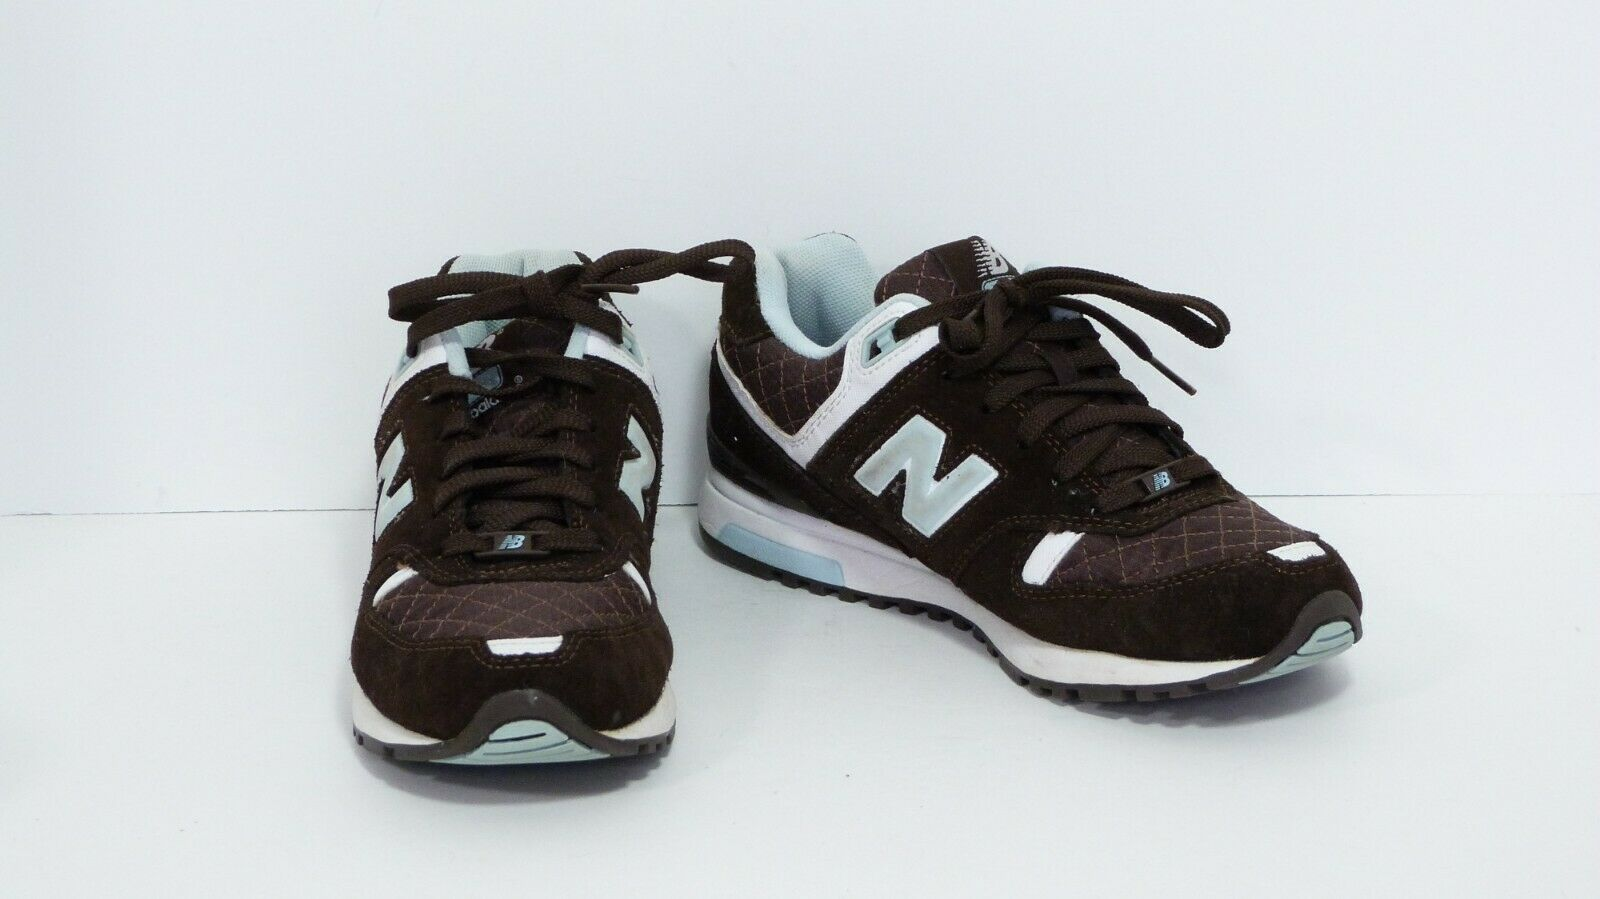 New Balance Brown Suede Baby bluee Accent Tennis shoes Sneakers 578 Women's 9 EUC